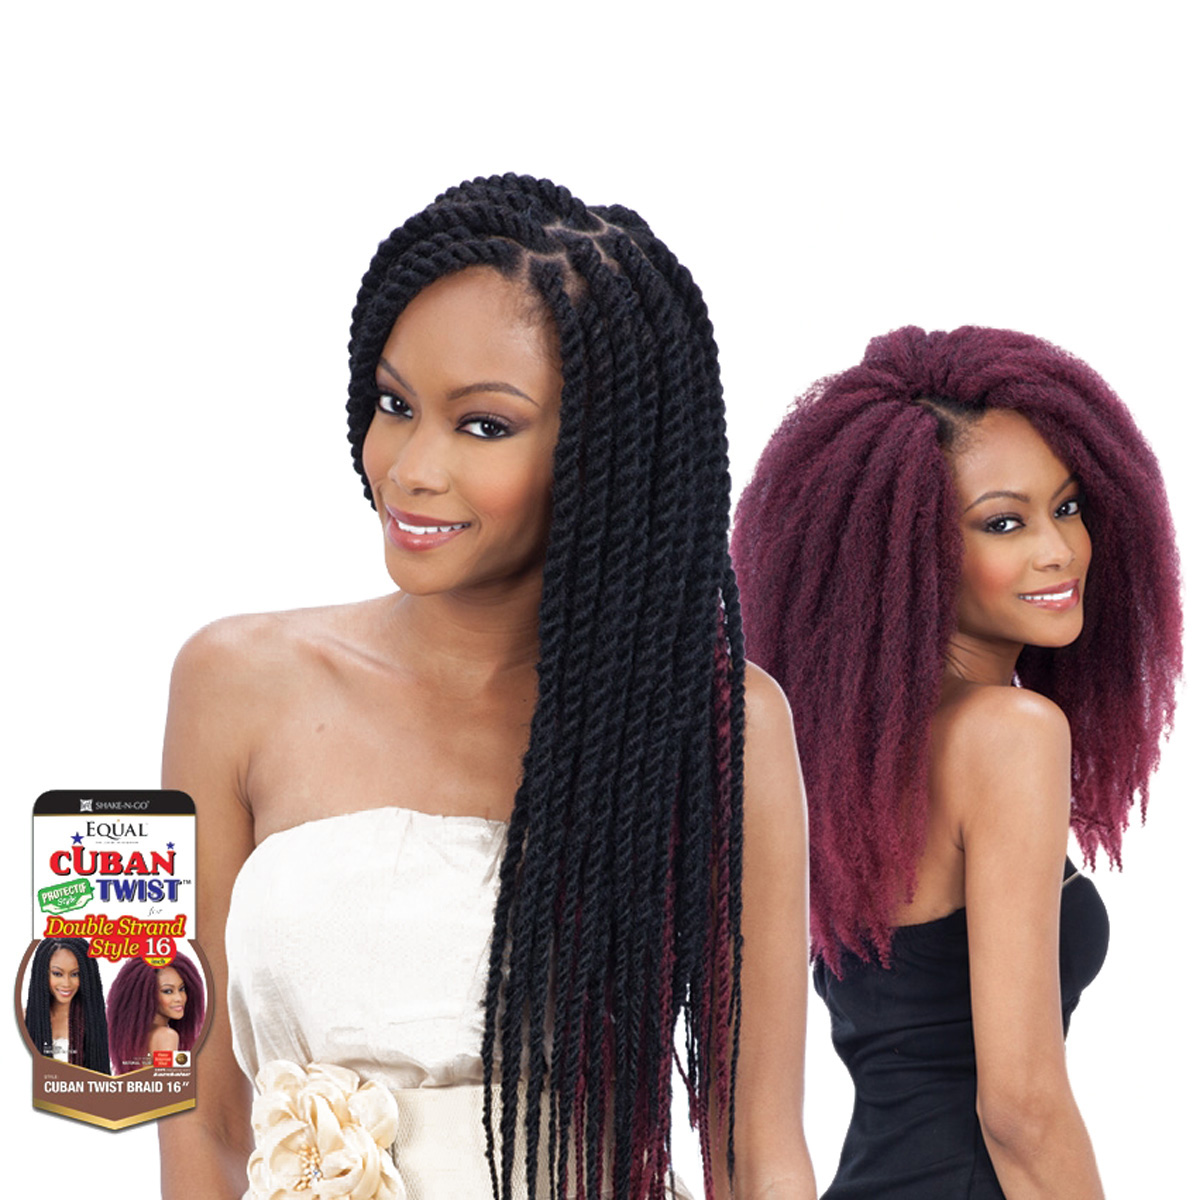 beautiful natural Hairstyles EQUAL Cuban Twist